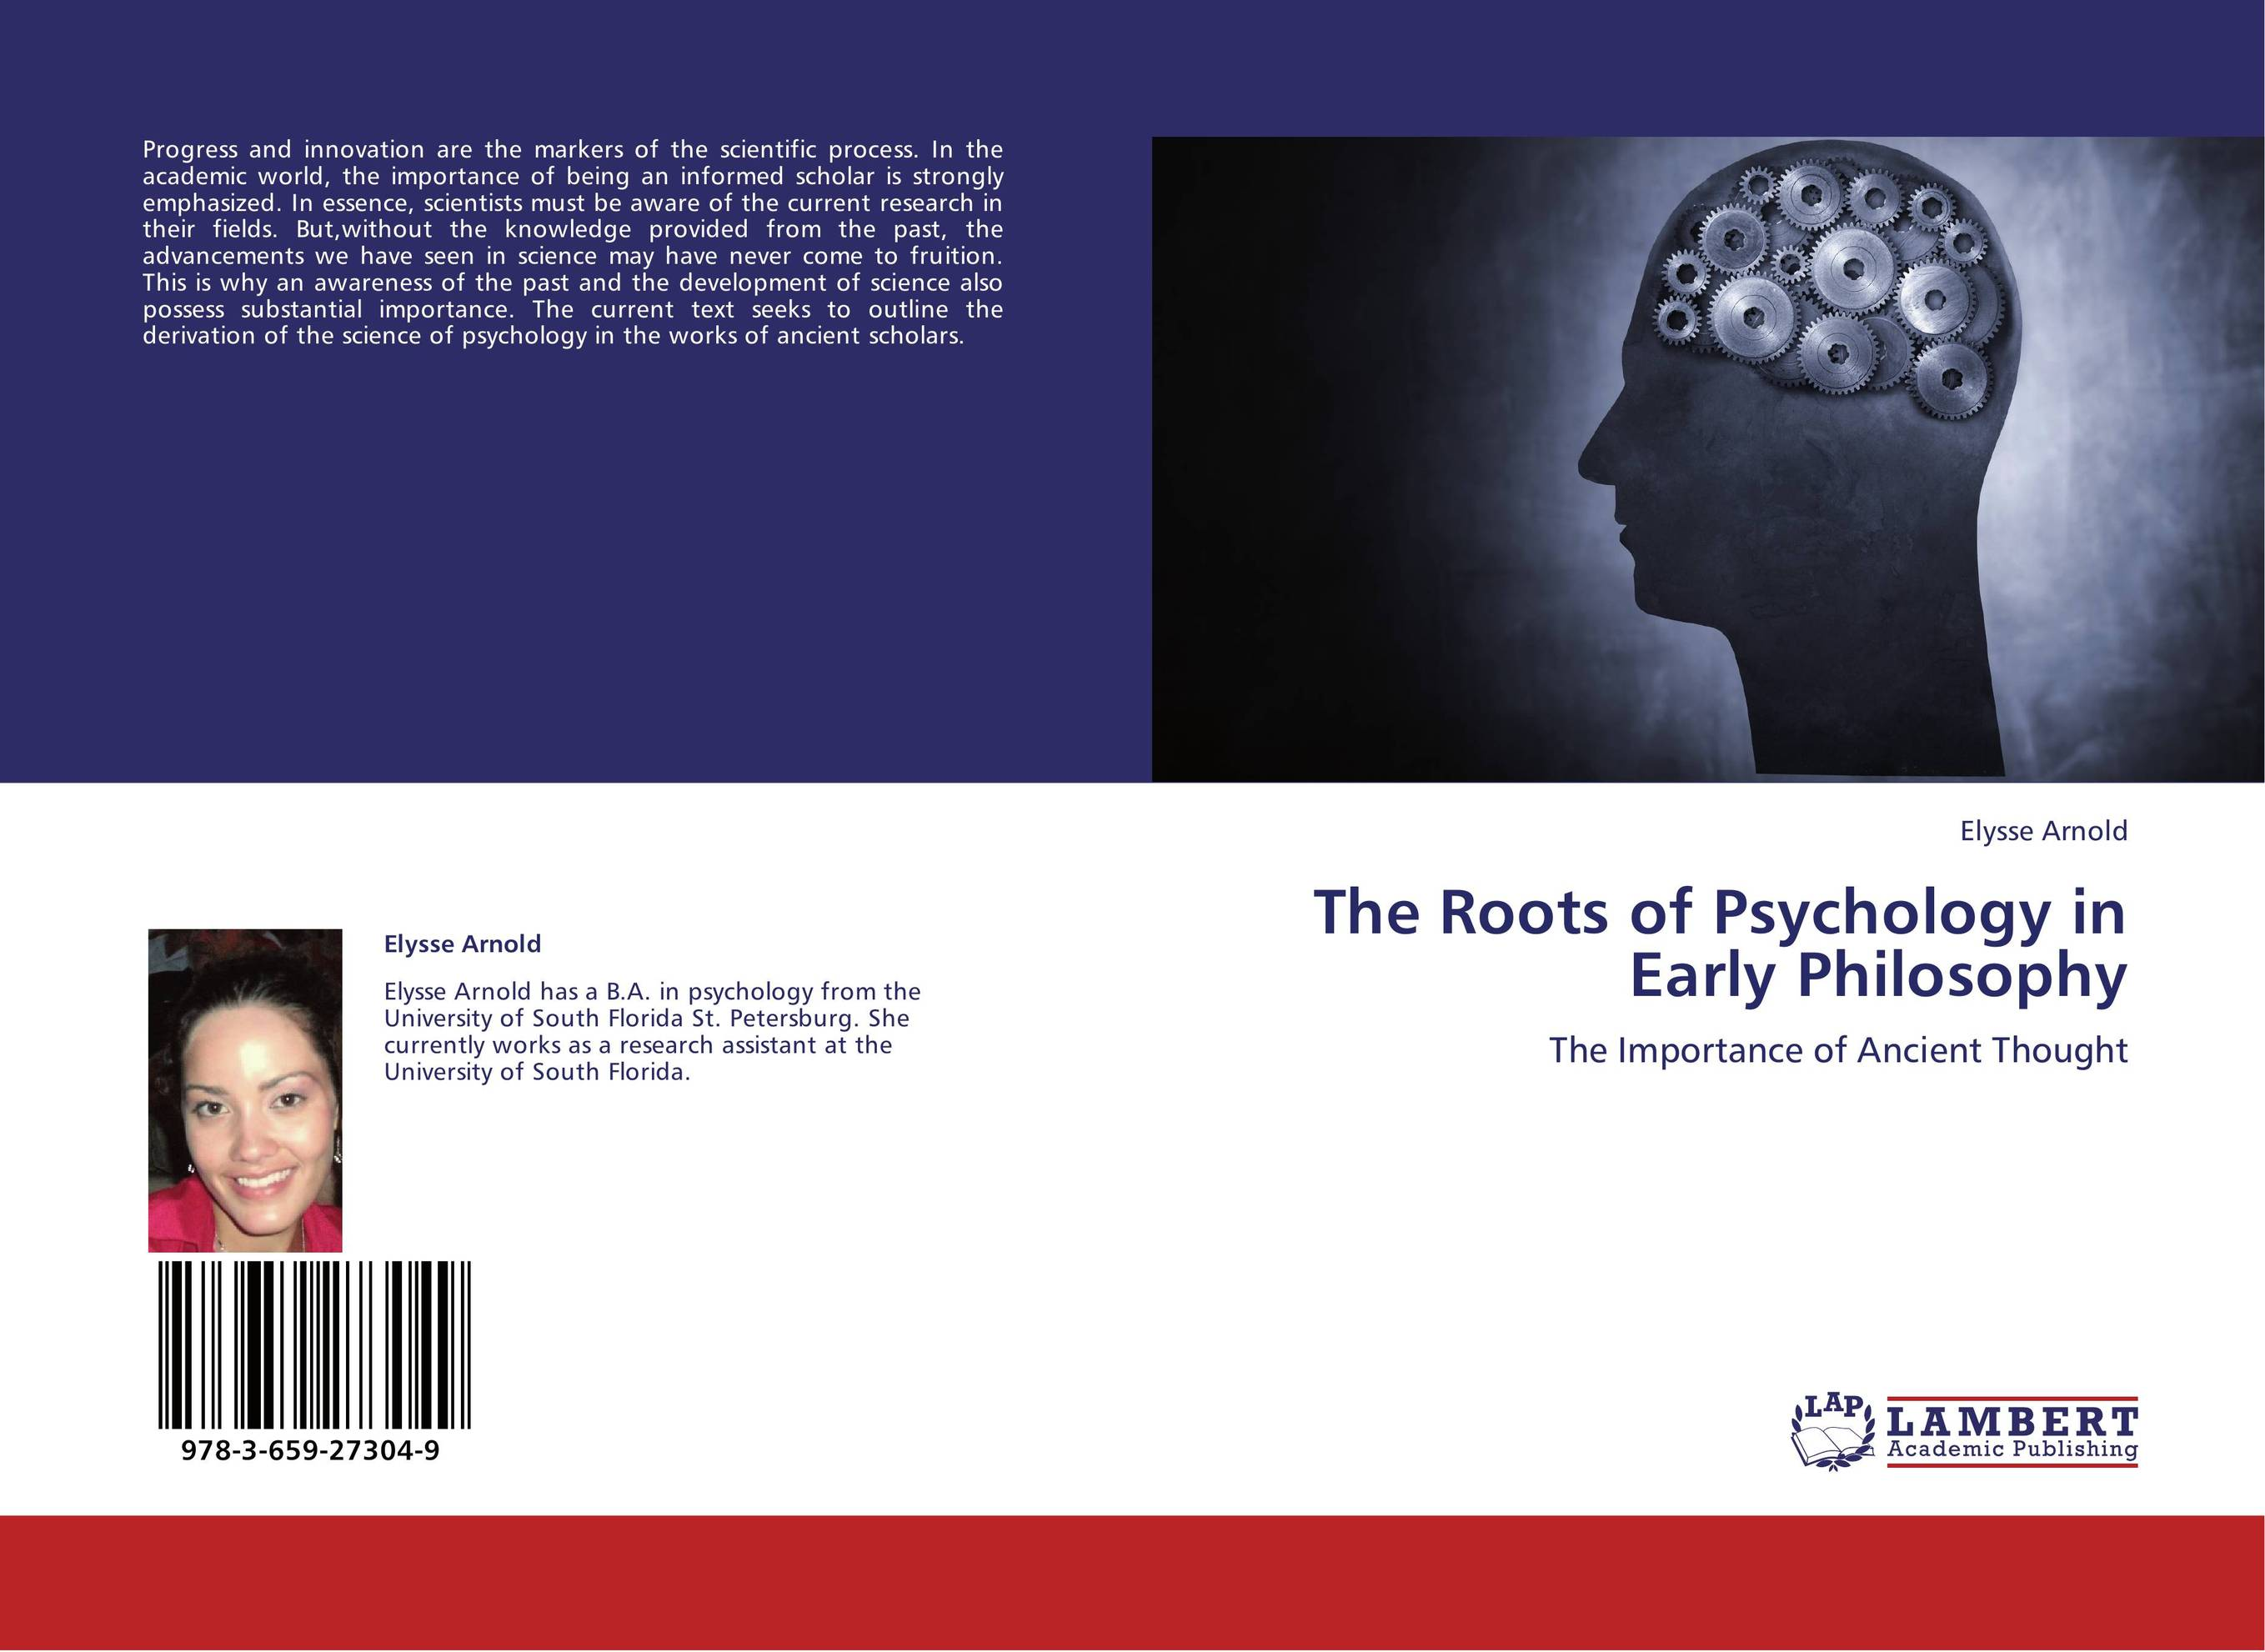 the historical account of the importance of physiology in psychology Statistics help psychologists know to what extent certain psychological problems are common they are also needed for psychological research psychological research is a cornerstone of the field, and experimental research helps psychologists provide better treatment for their patients.